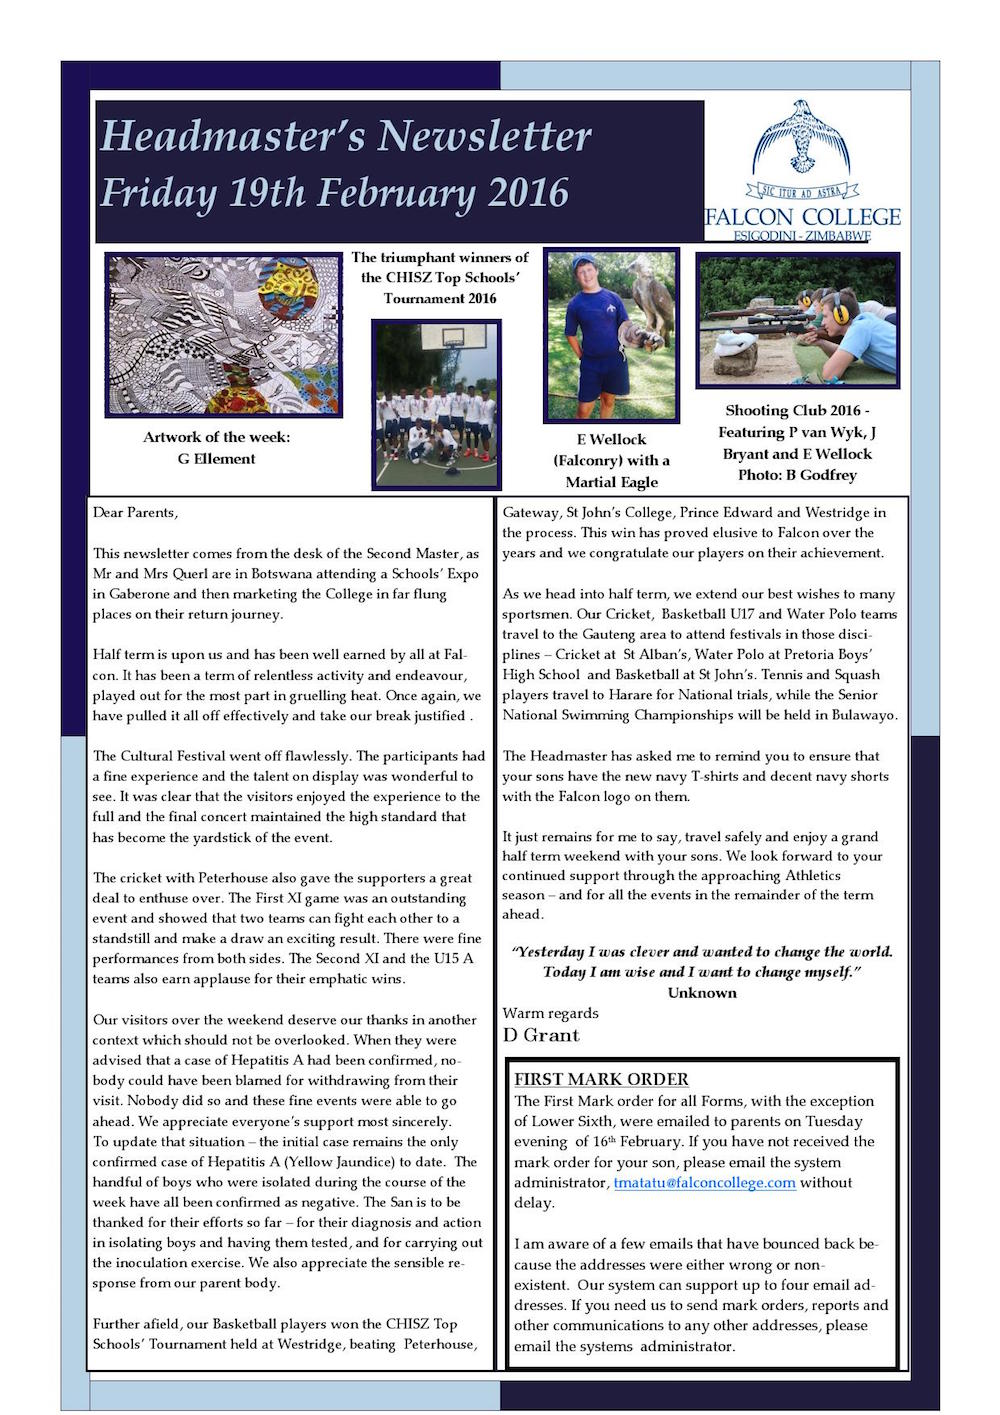 Headmaster's Newsletter Friday 19th February 2016 edited_000001